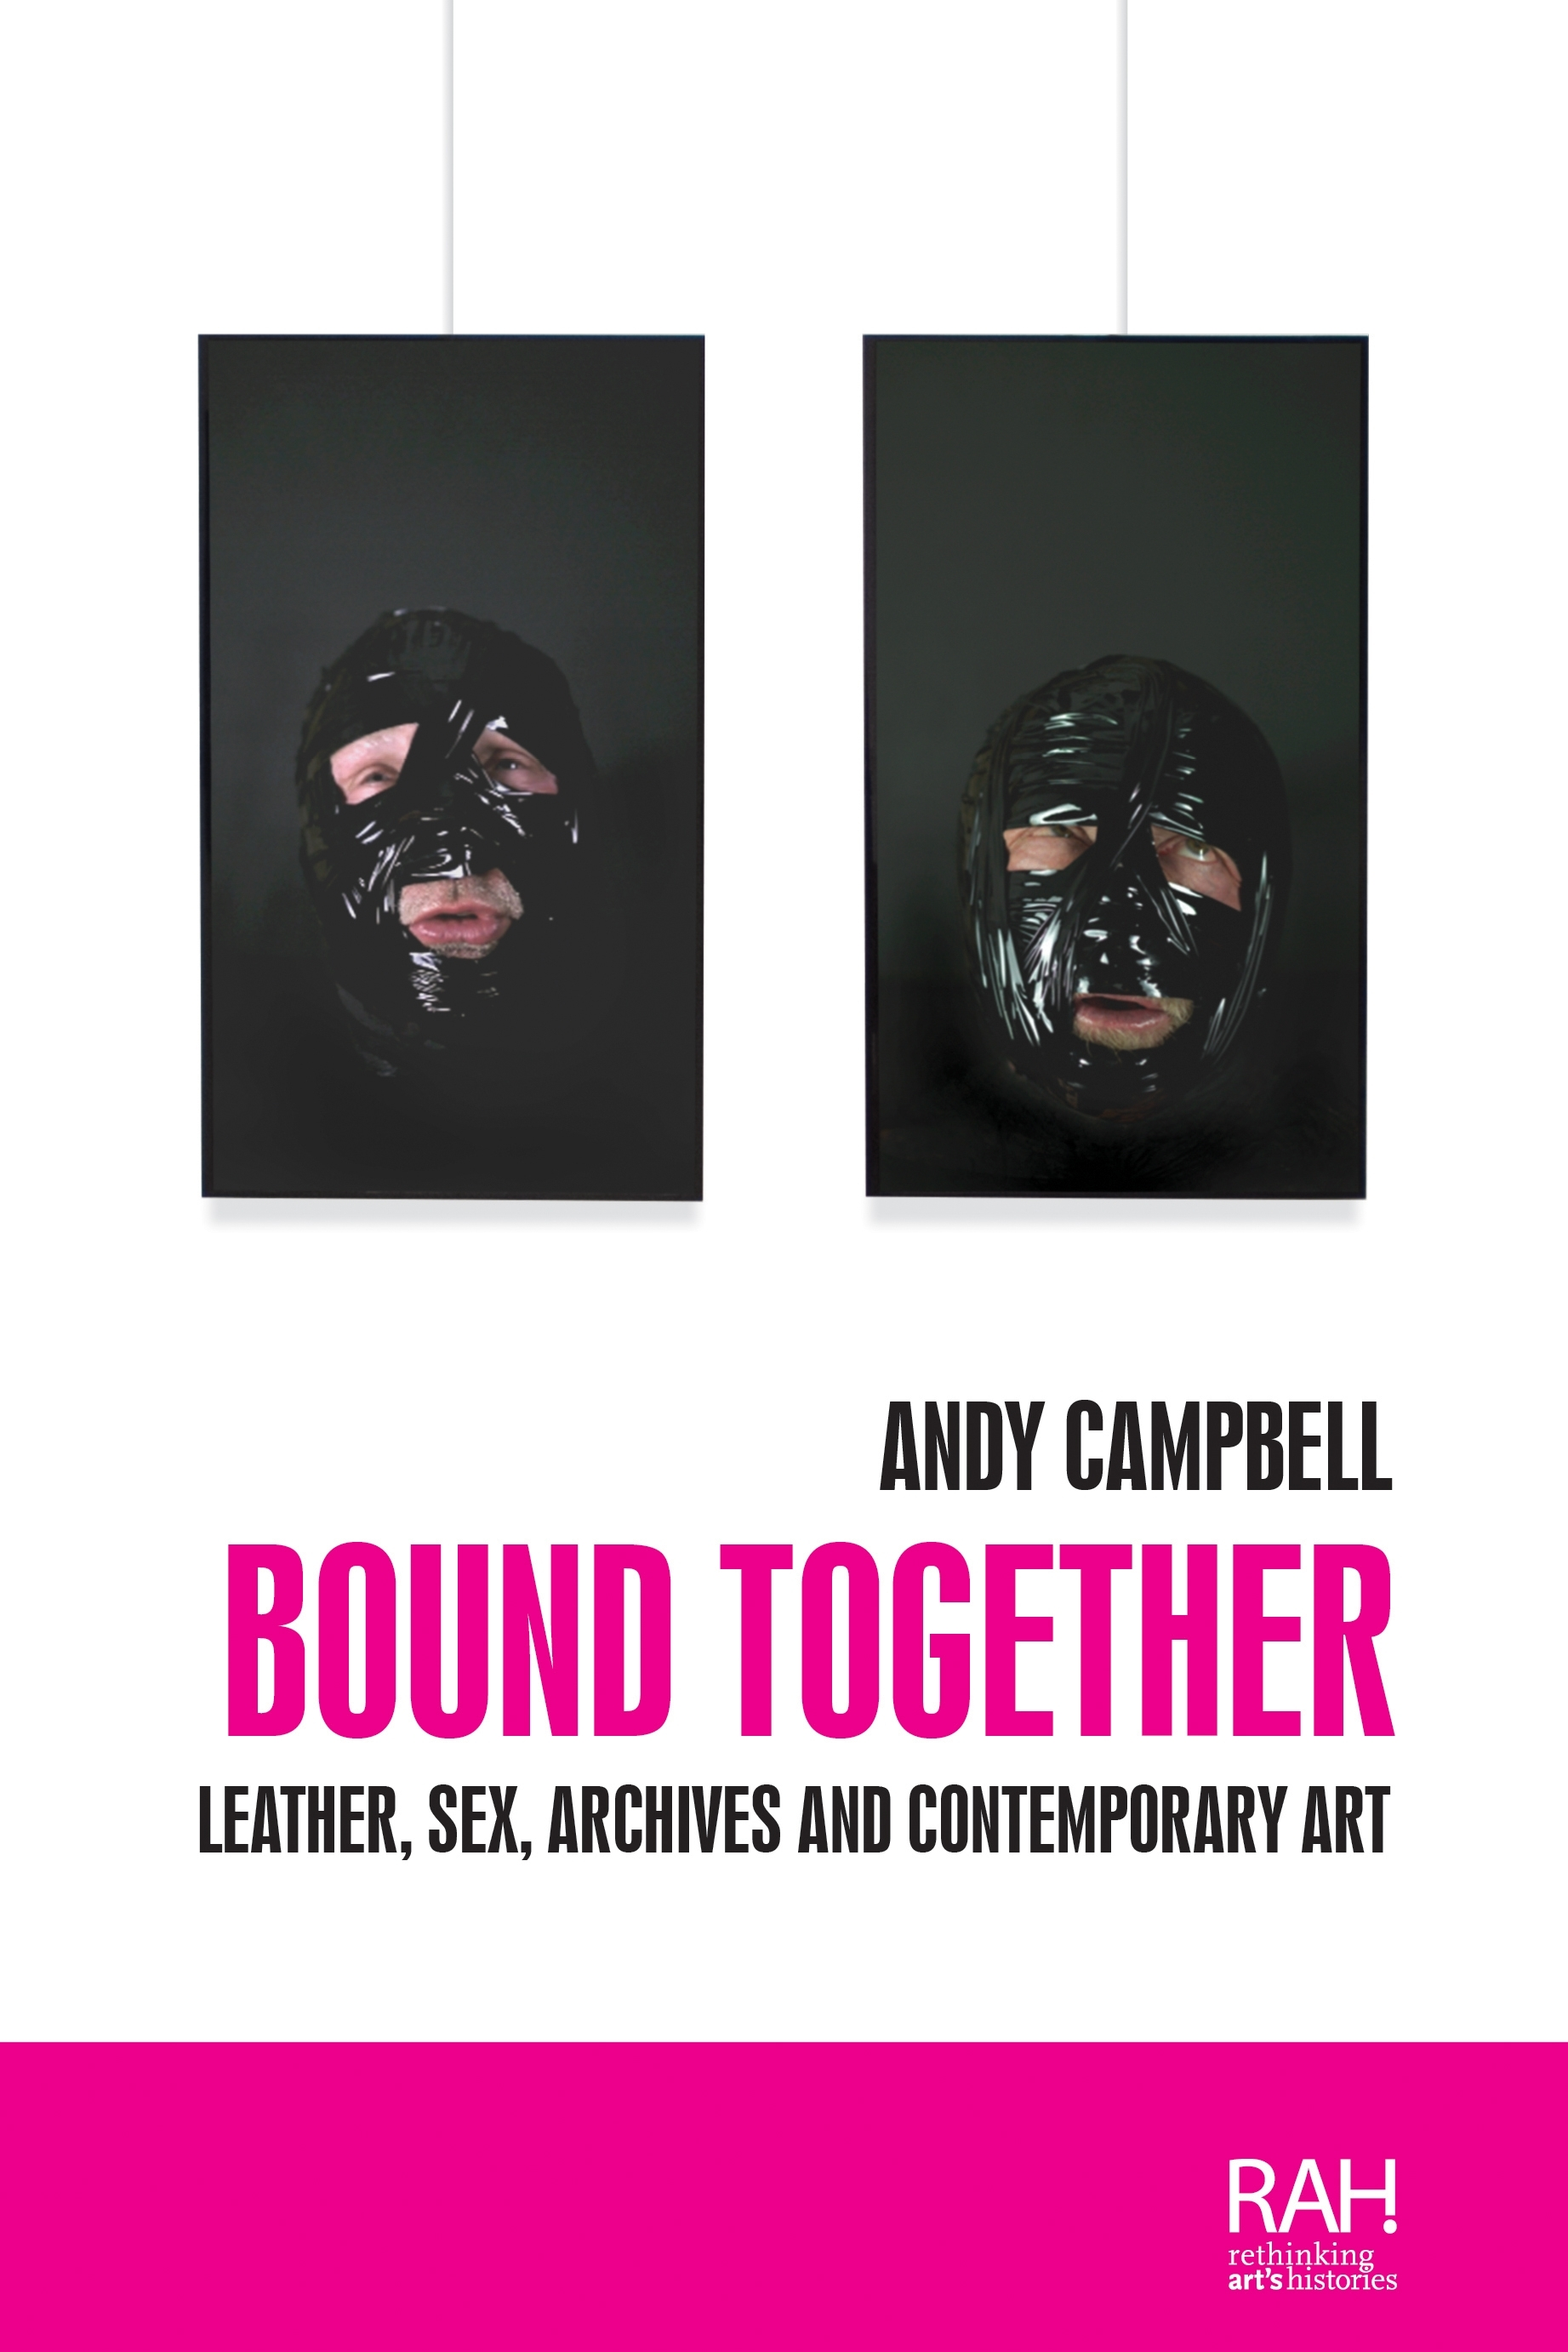 Bound together – Q&A with Andy Campbell